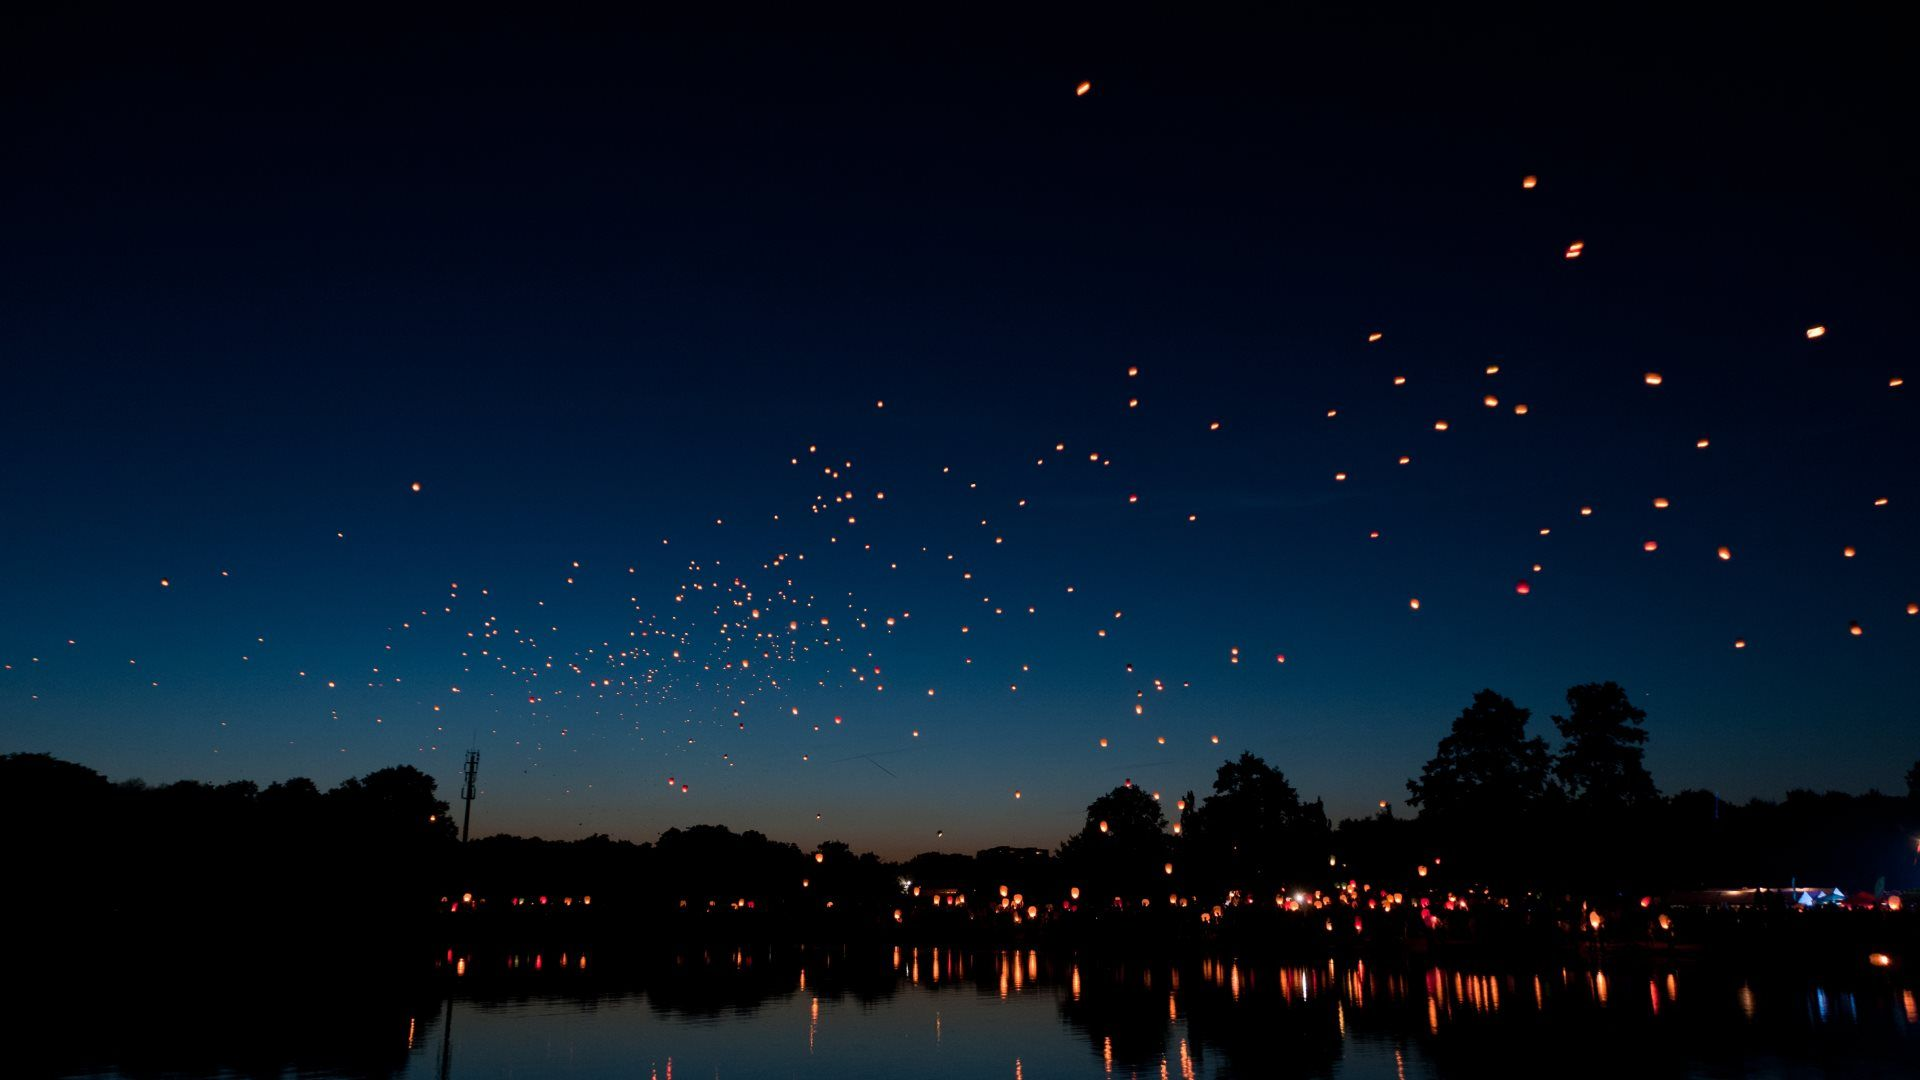 Flying Hot Air Lanterns HD Wallpapers. 4K Wallpapers